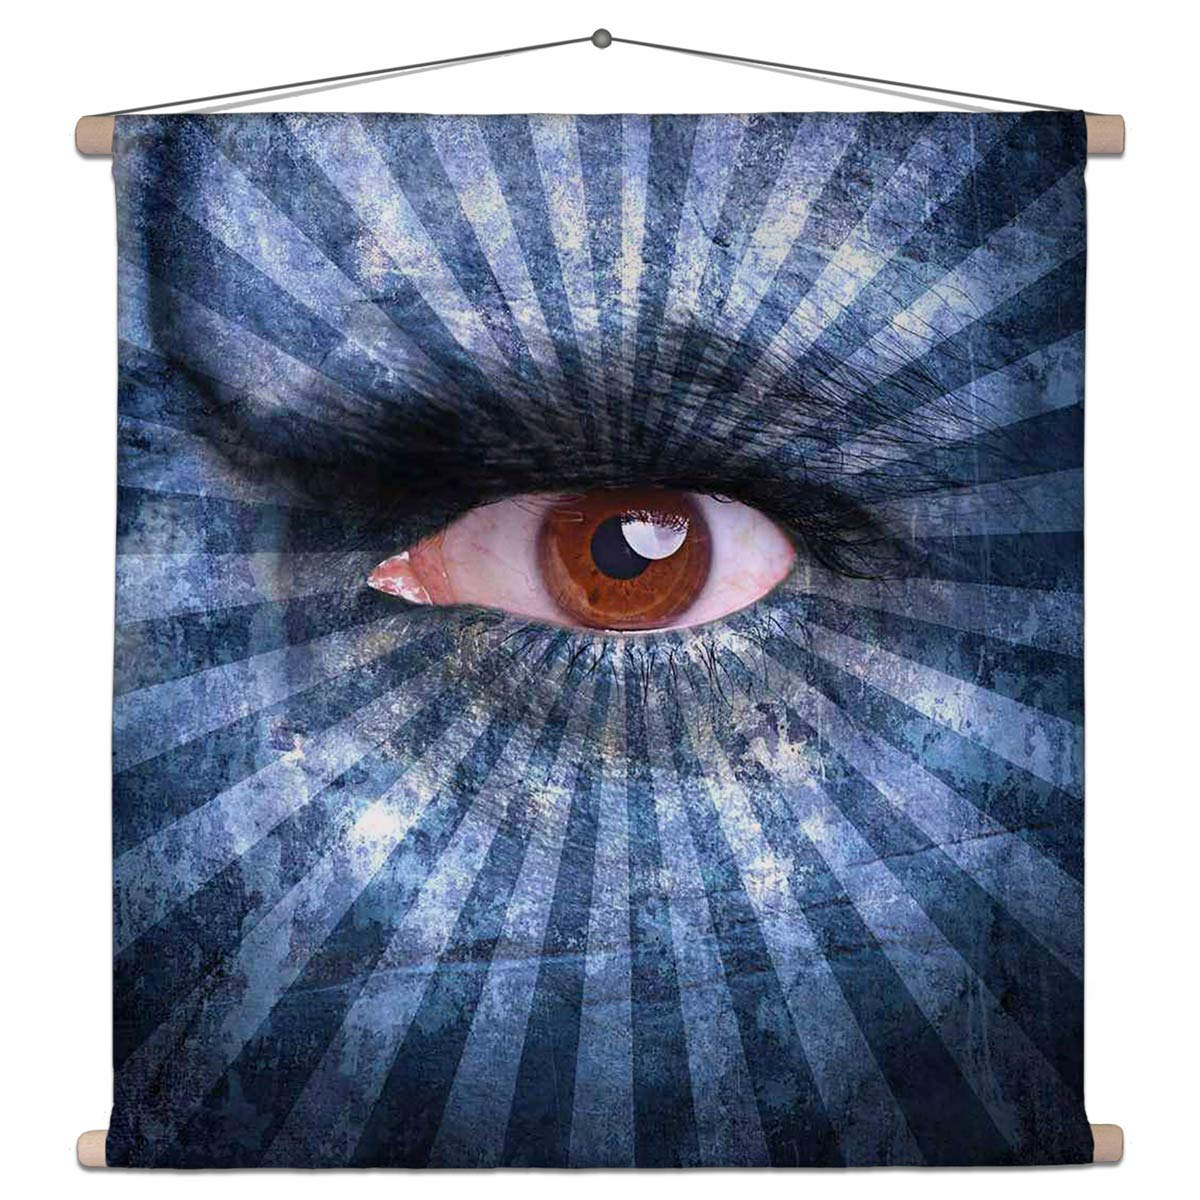 Buy Artzfolio Human Face Covered with Blue Stripes Canvas